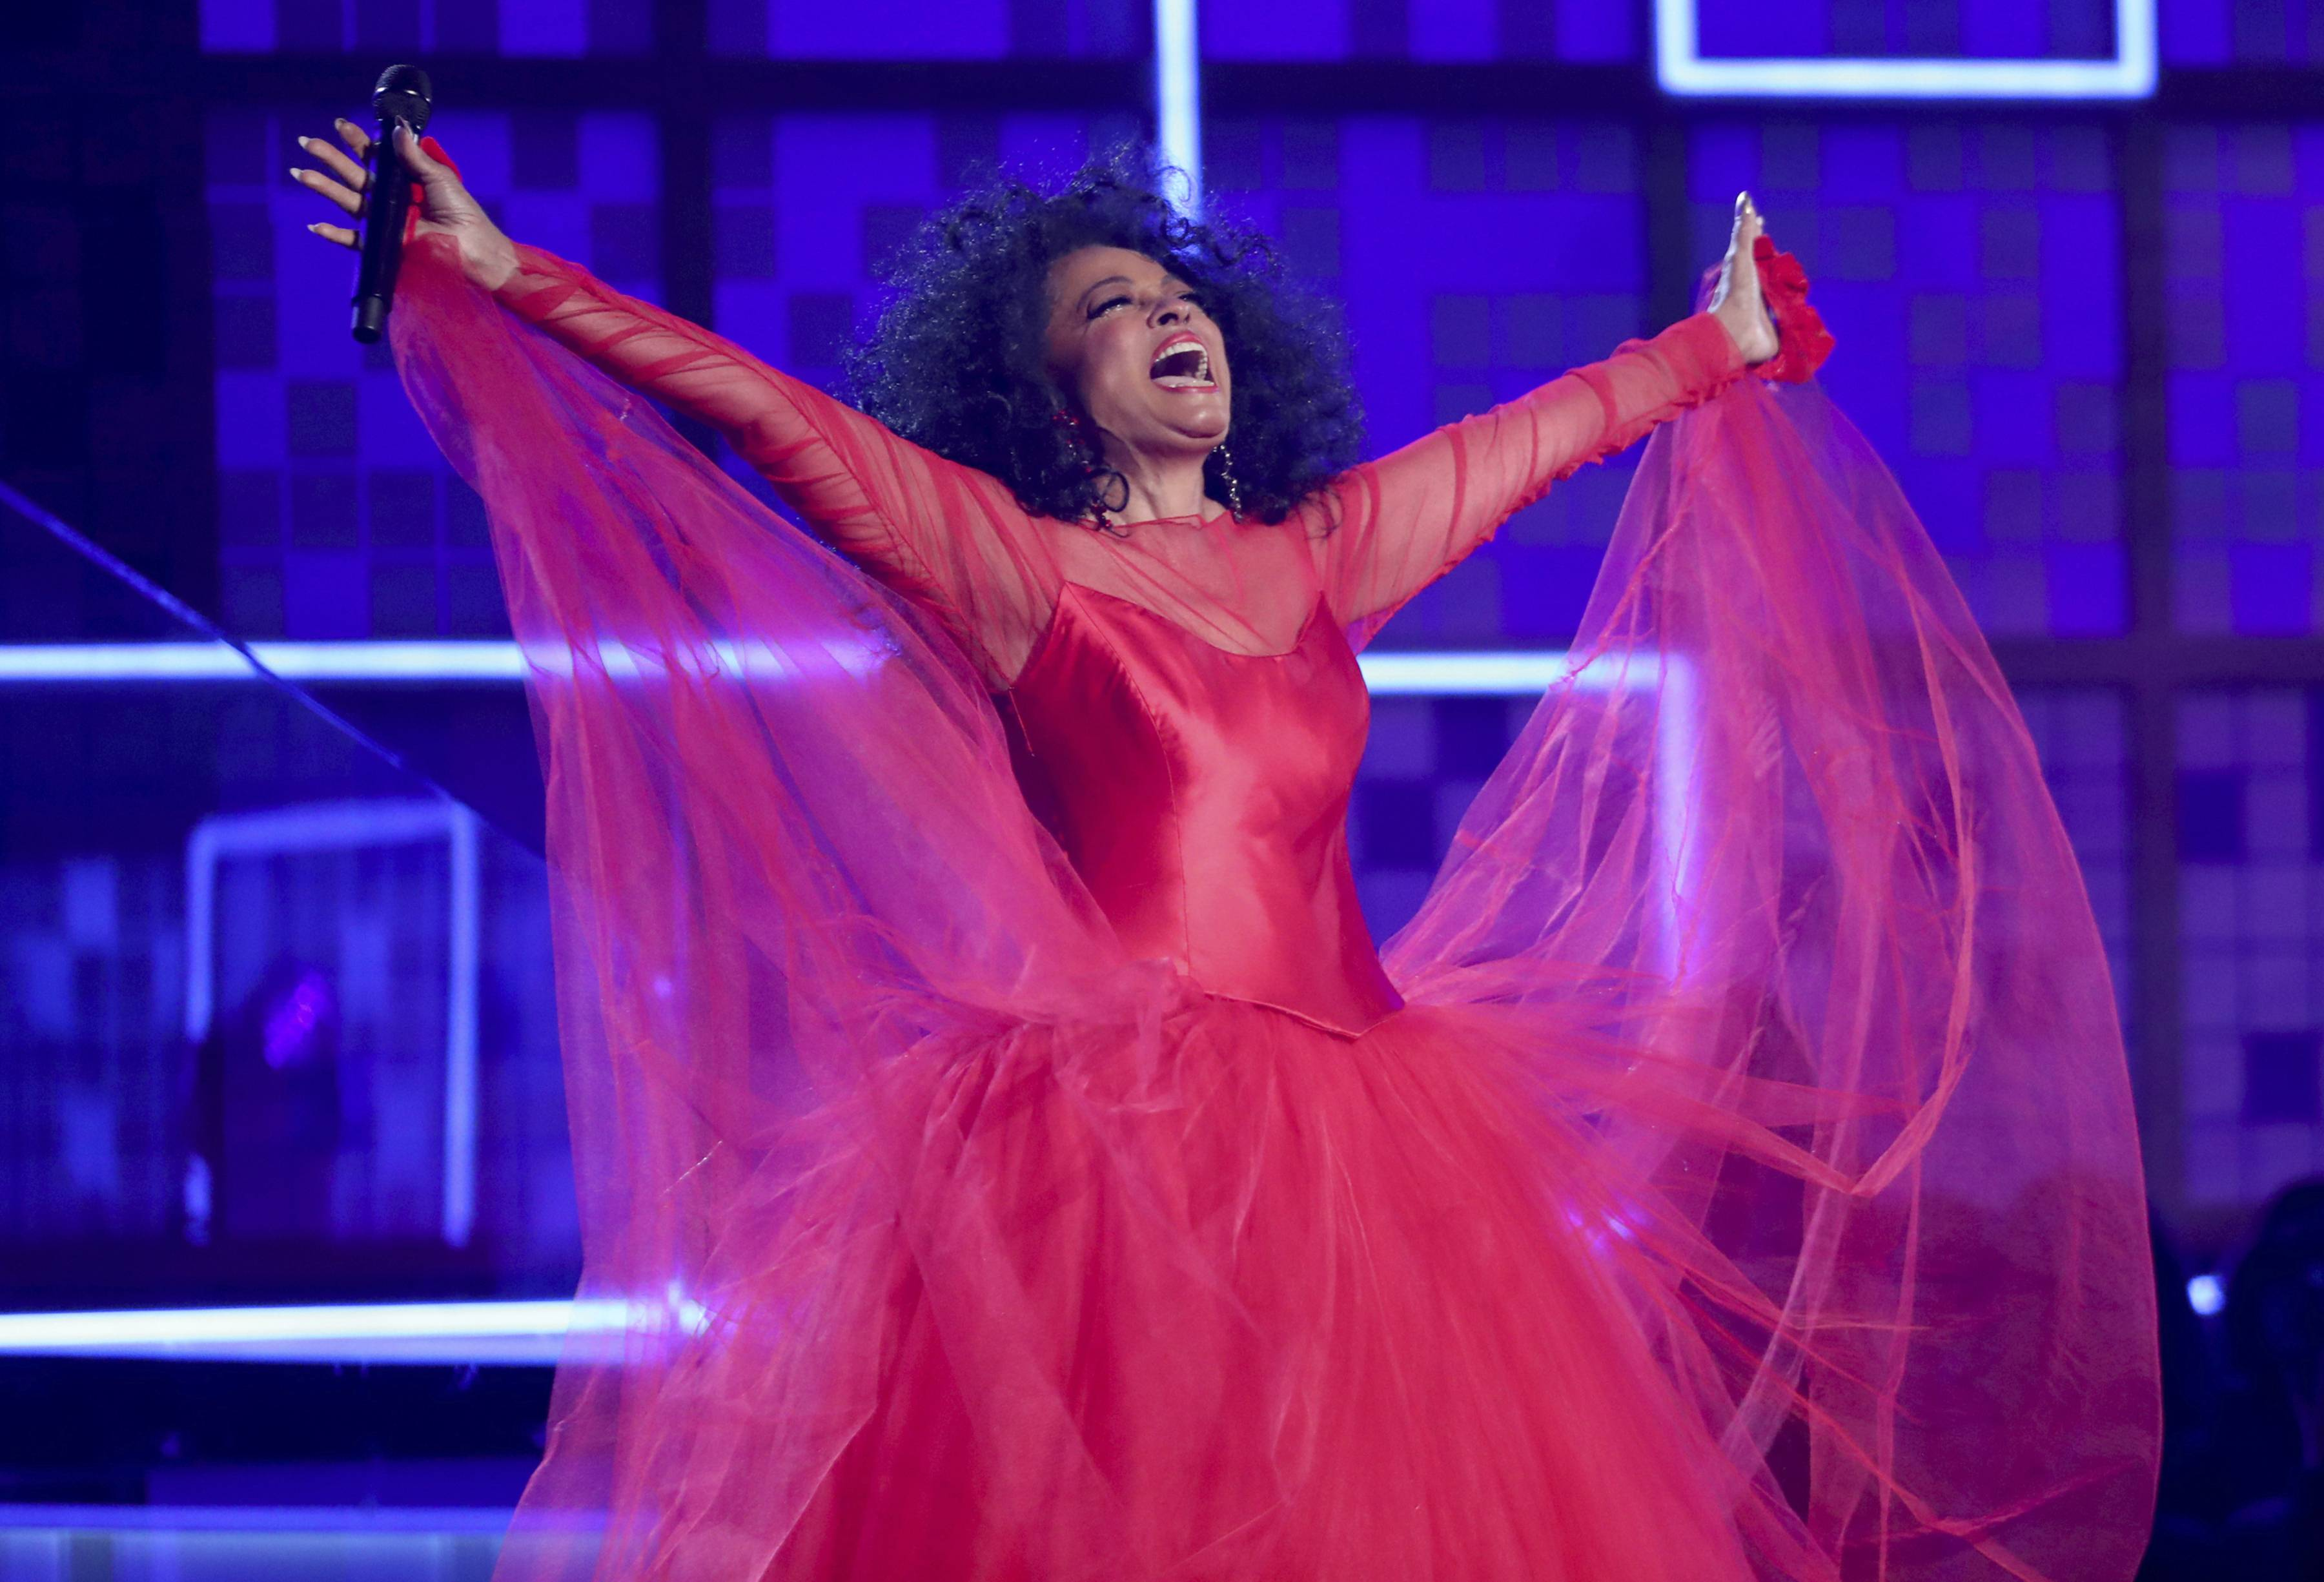 Diana Ross performs a medley at the 61st annual Grammy Awards on Sunday, Feb. 10, 2019, in Los Angeles.